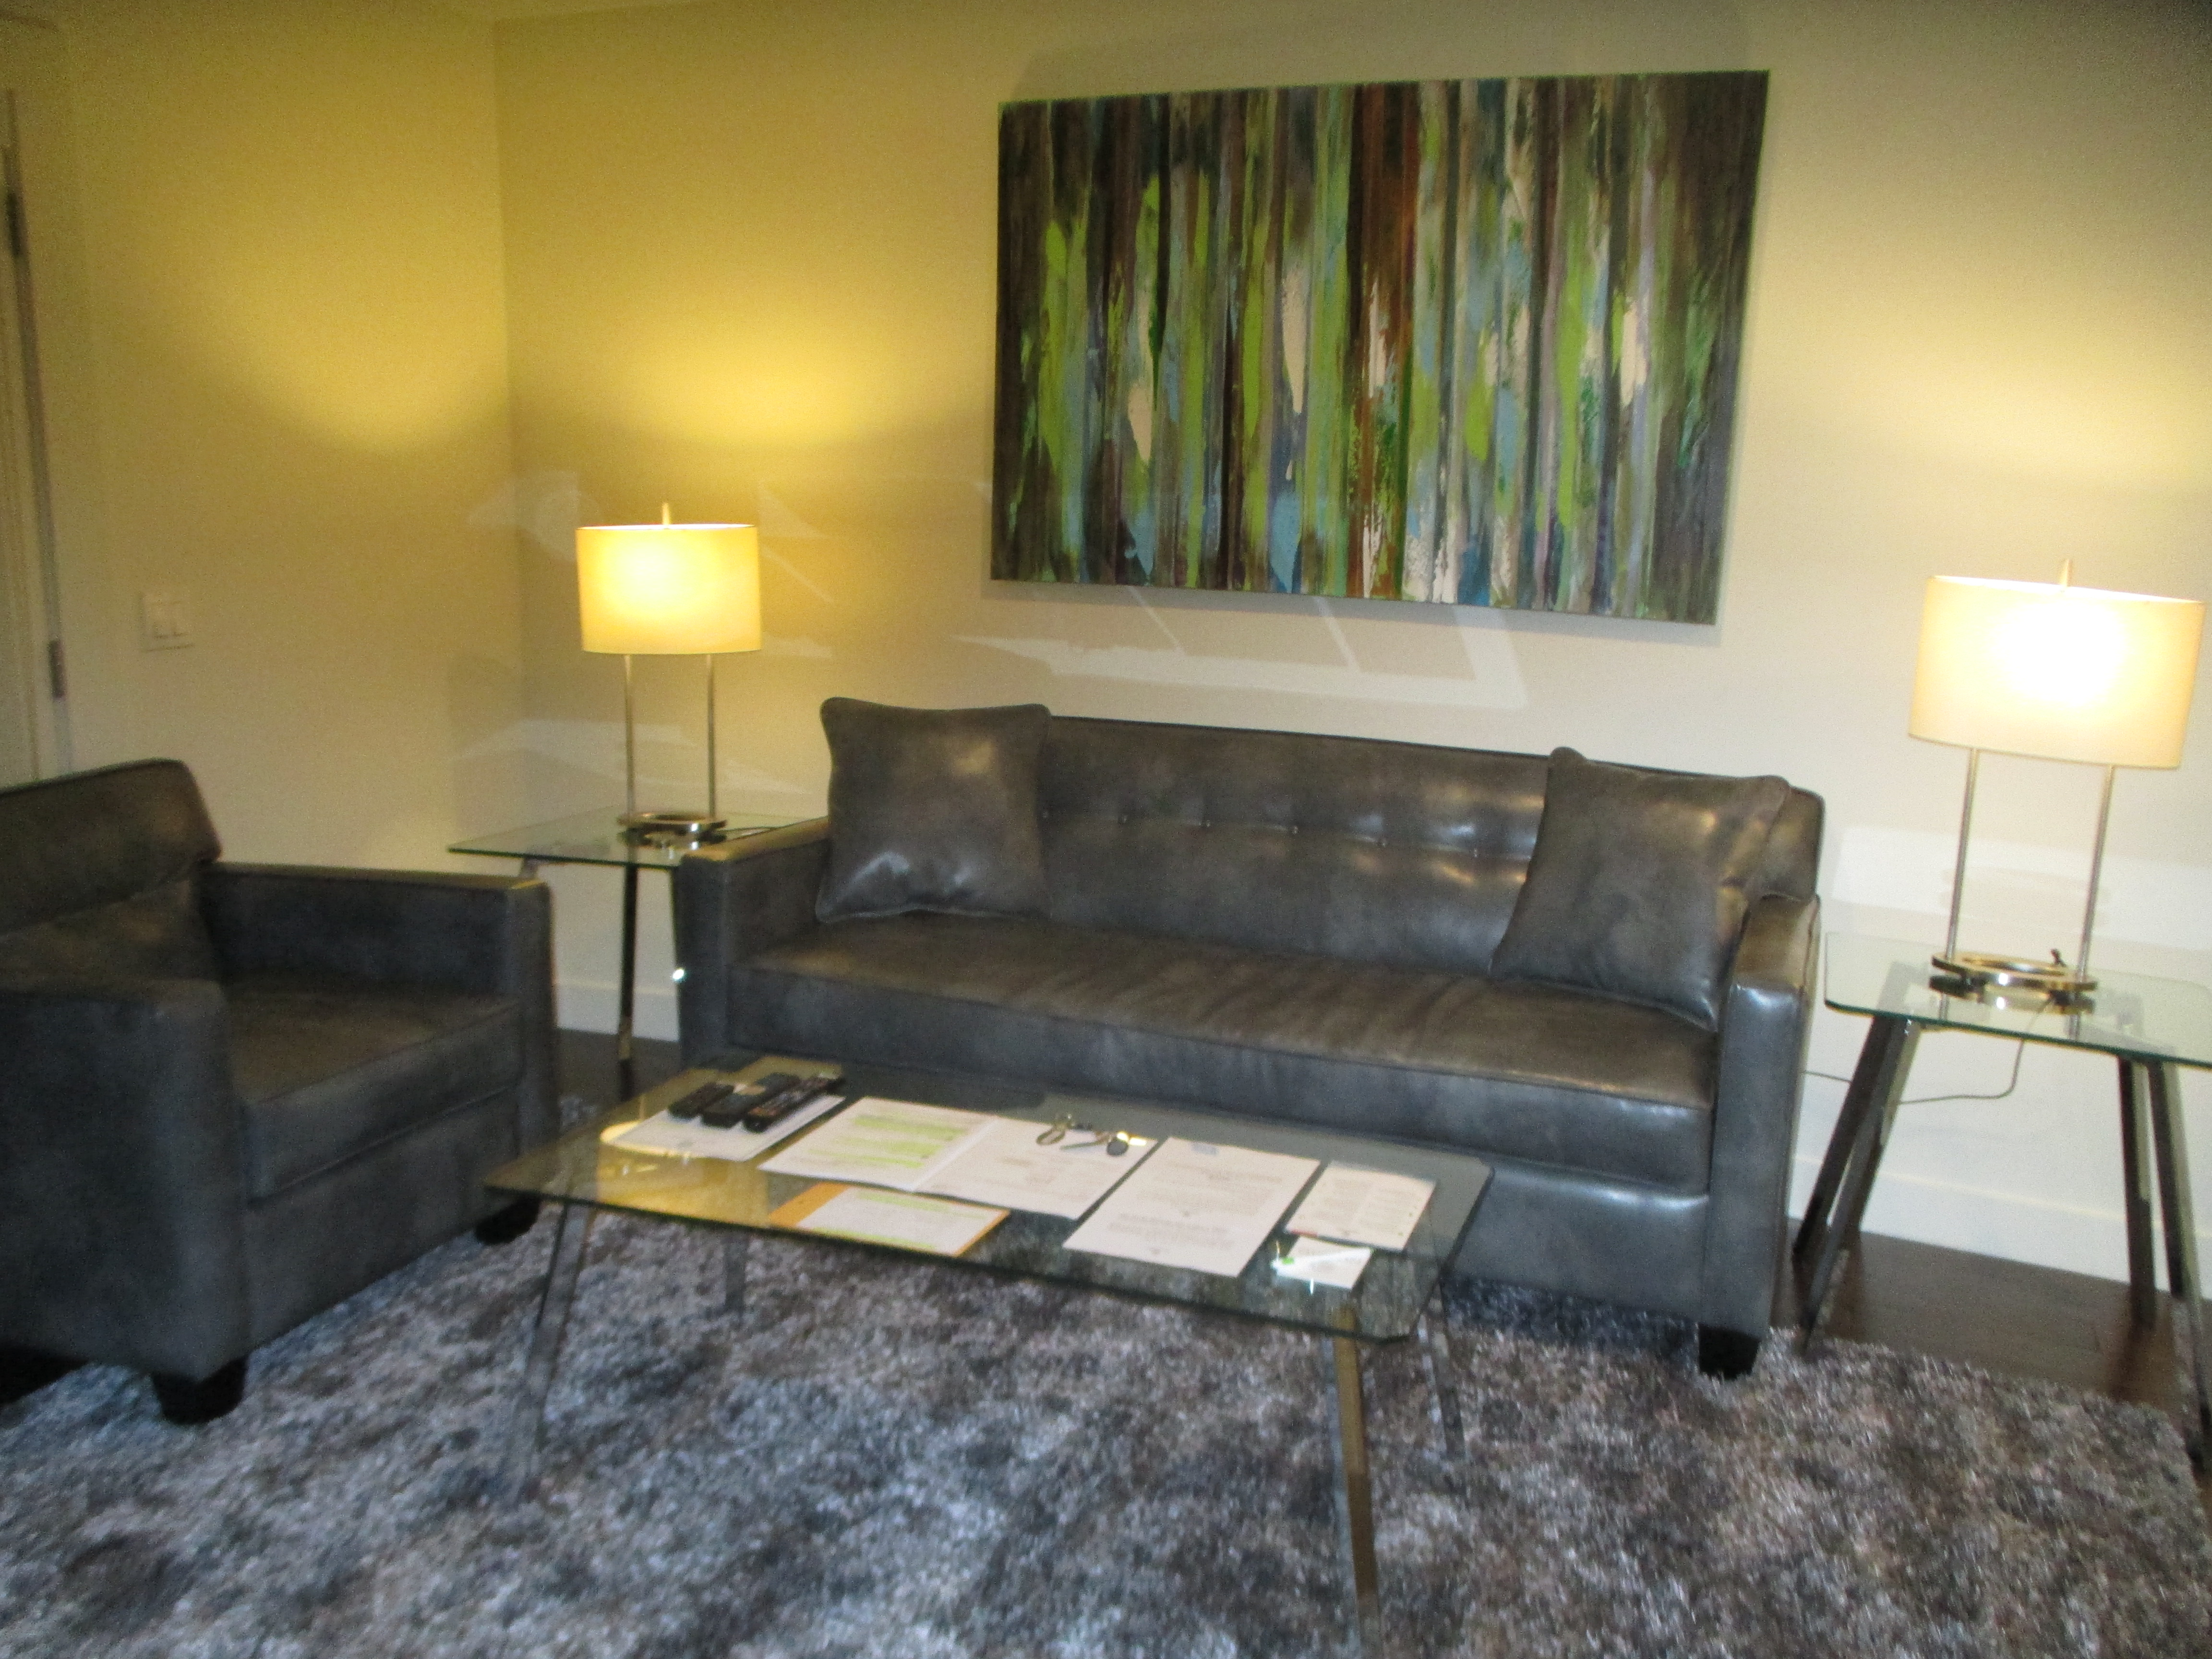 image 5 furnished 1 bedroom Apartment for rent in Belvedere, Marin County